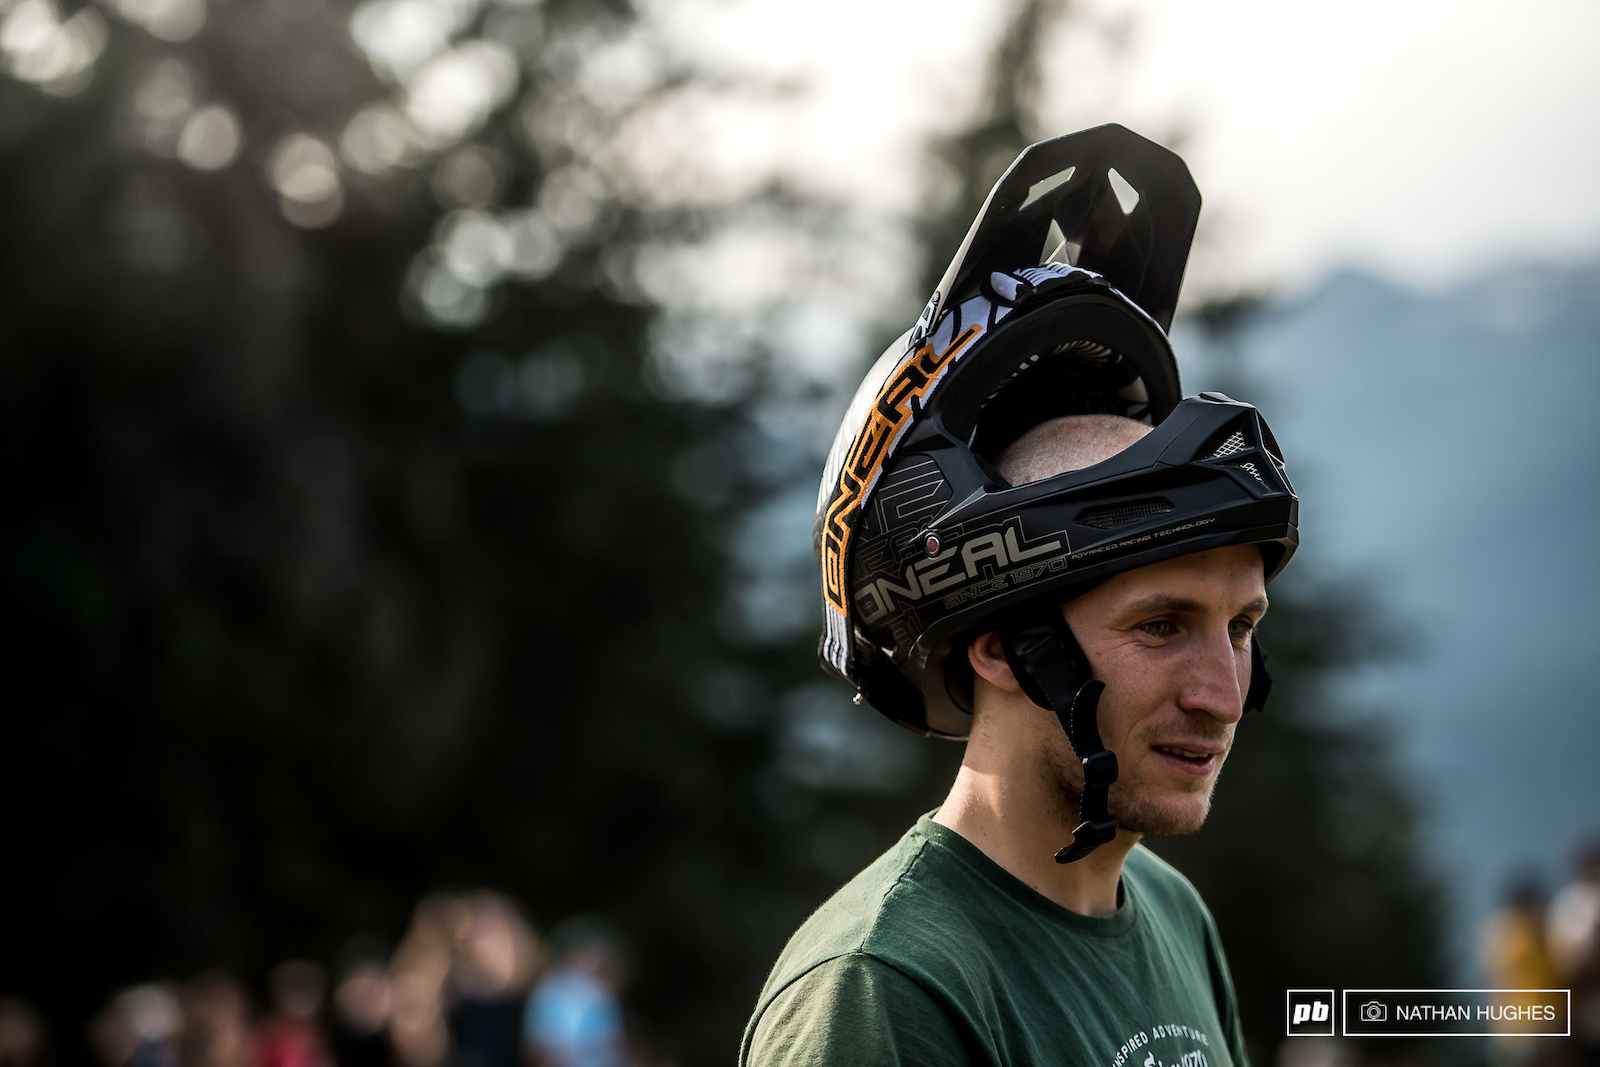 Jakub Vencl rode into 7th spot this afternoon taking the Crankworx Speed and Style World Tour title by just one spot... 5000 was the reward he so nearly lost to Loron.